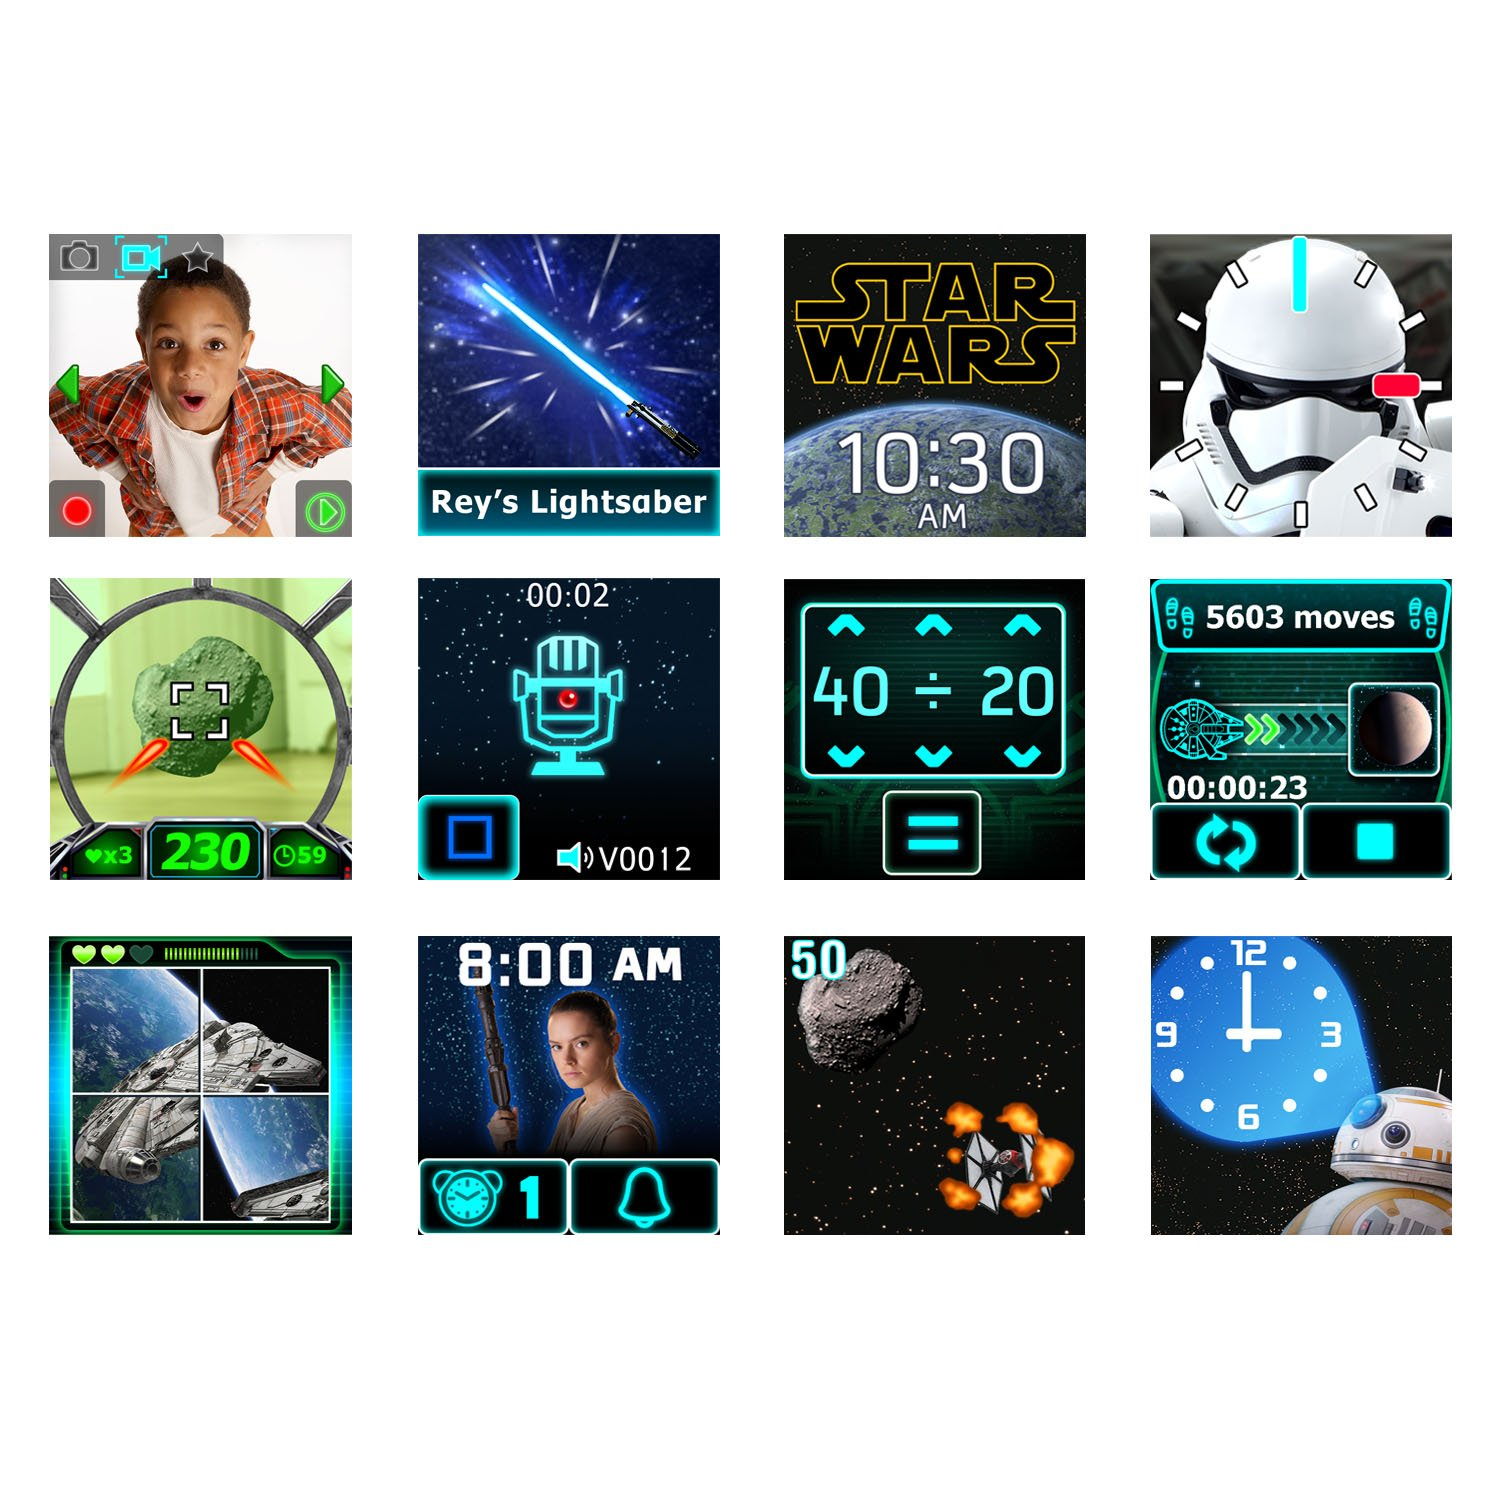 VTech Star Wars First Order Stormtrooper Smartwatch with Camera Amazon Exclusive, White by VTech (Image #8)